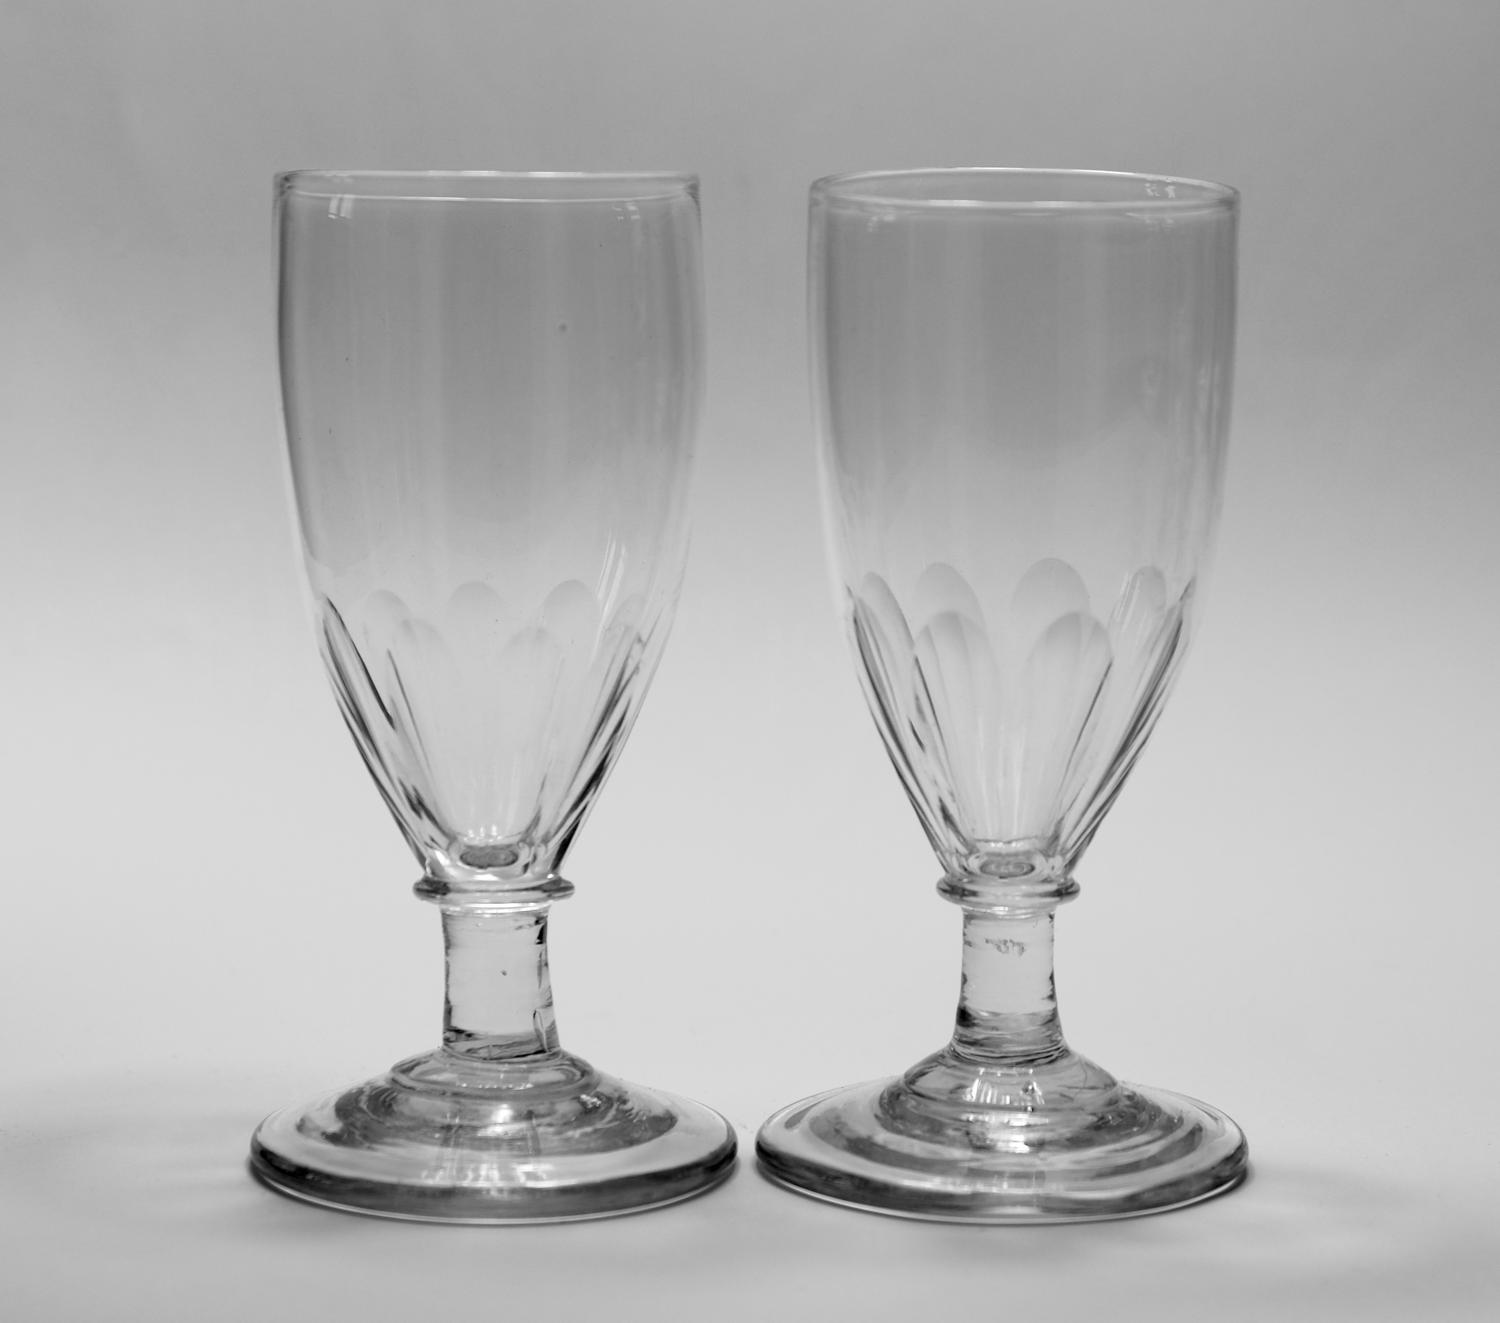 Pair of ale glasses C1810